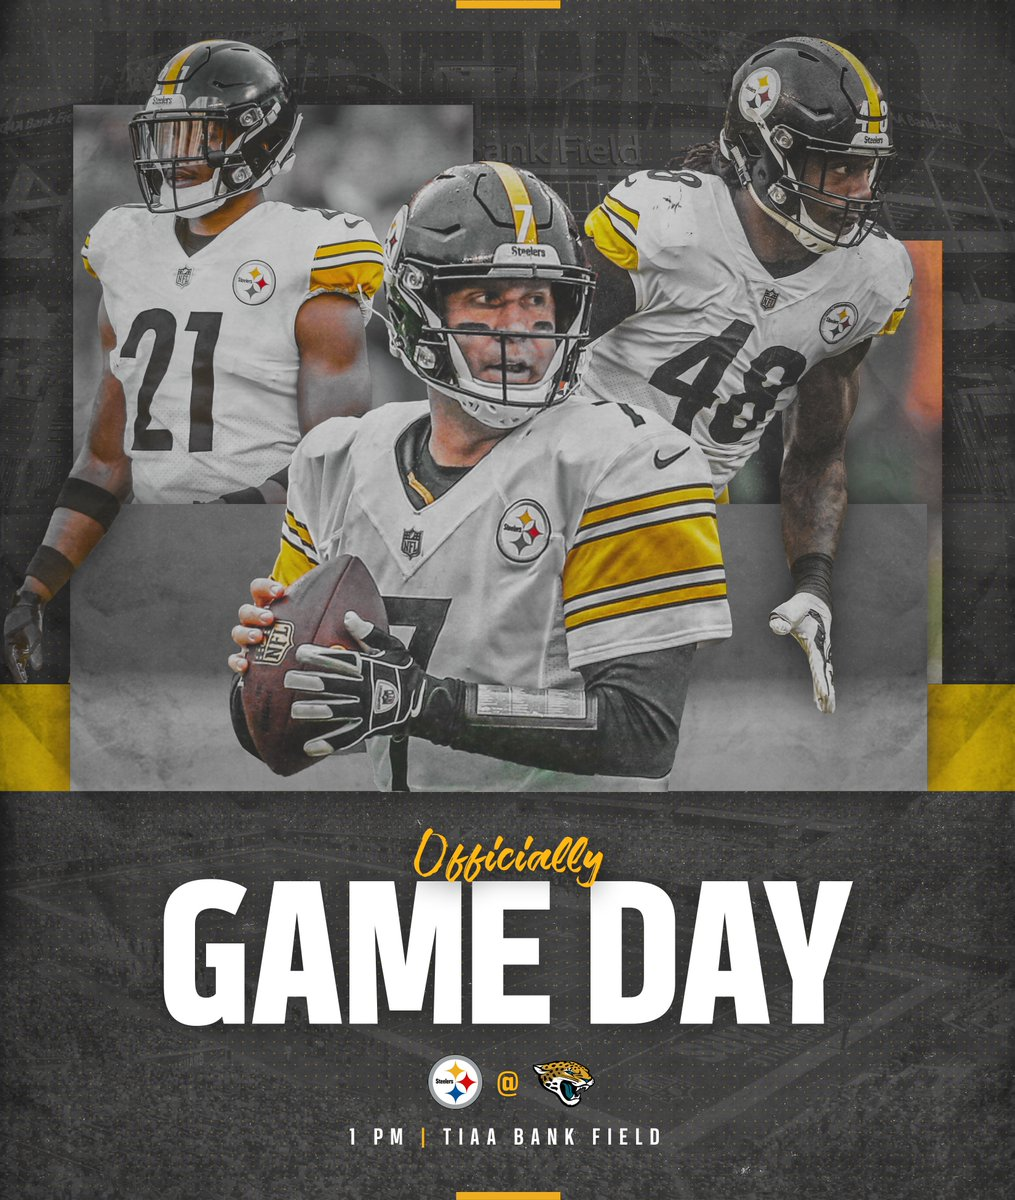 RT @steelers: It's time. #HereWeGo https://t.co/d8IoXDWH0y